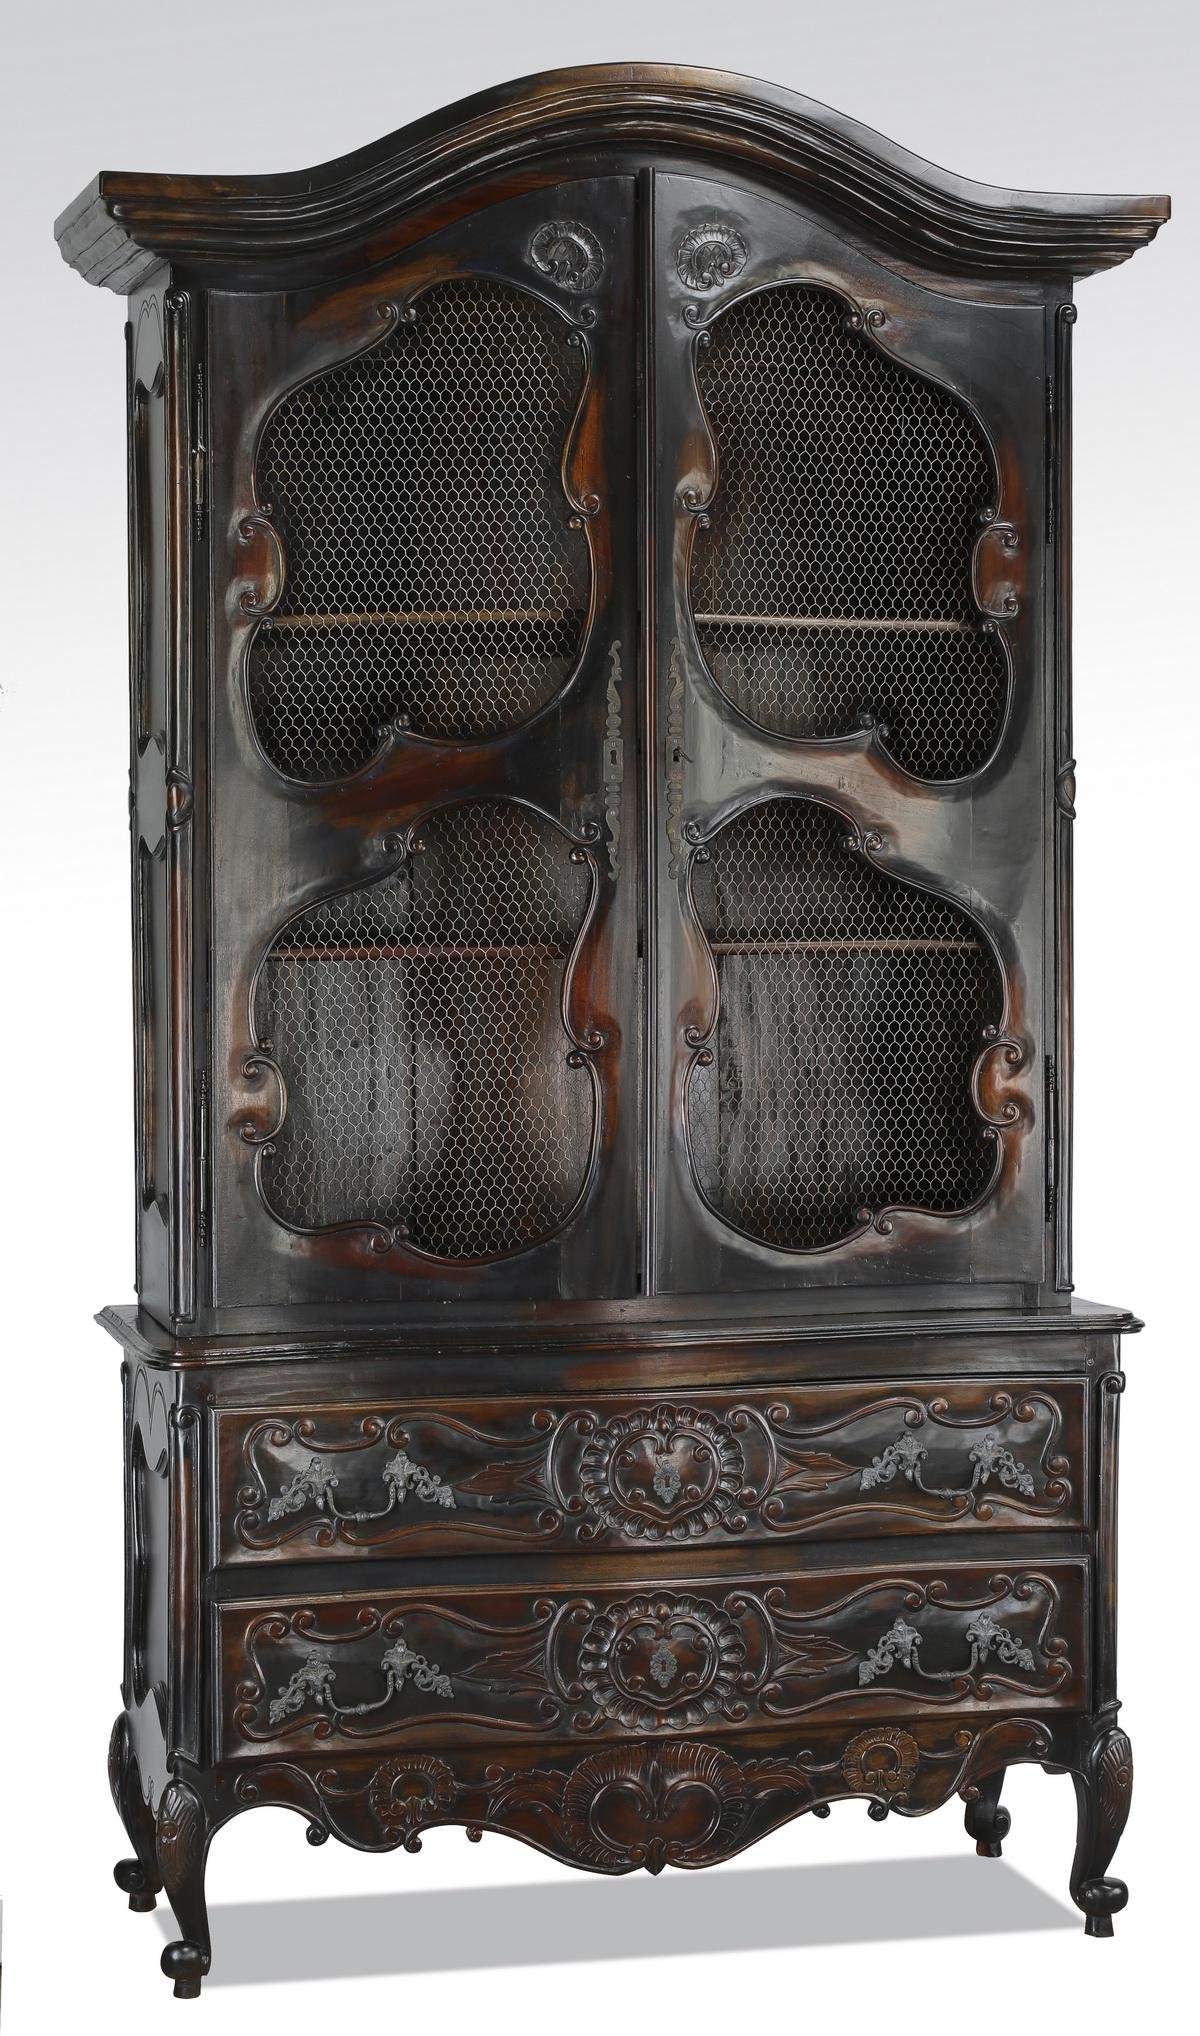 French Provincial style ebonized cabinet w/ wire mesh